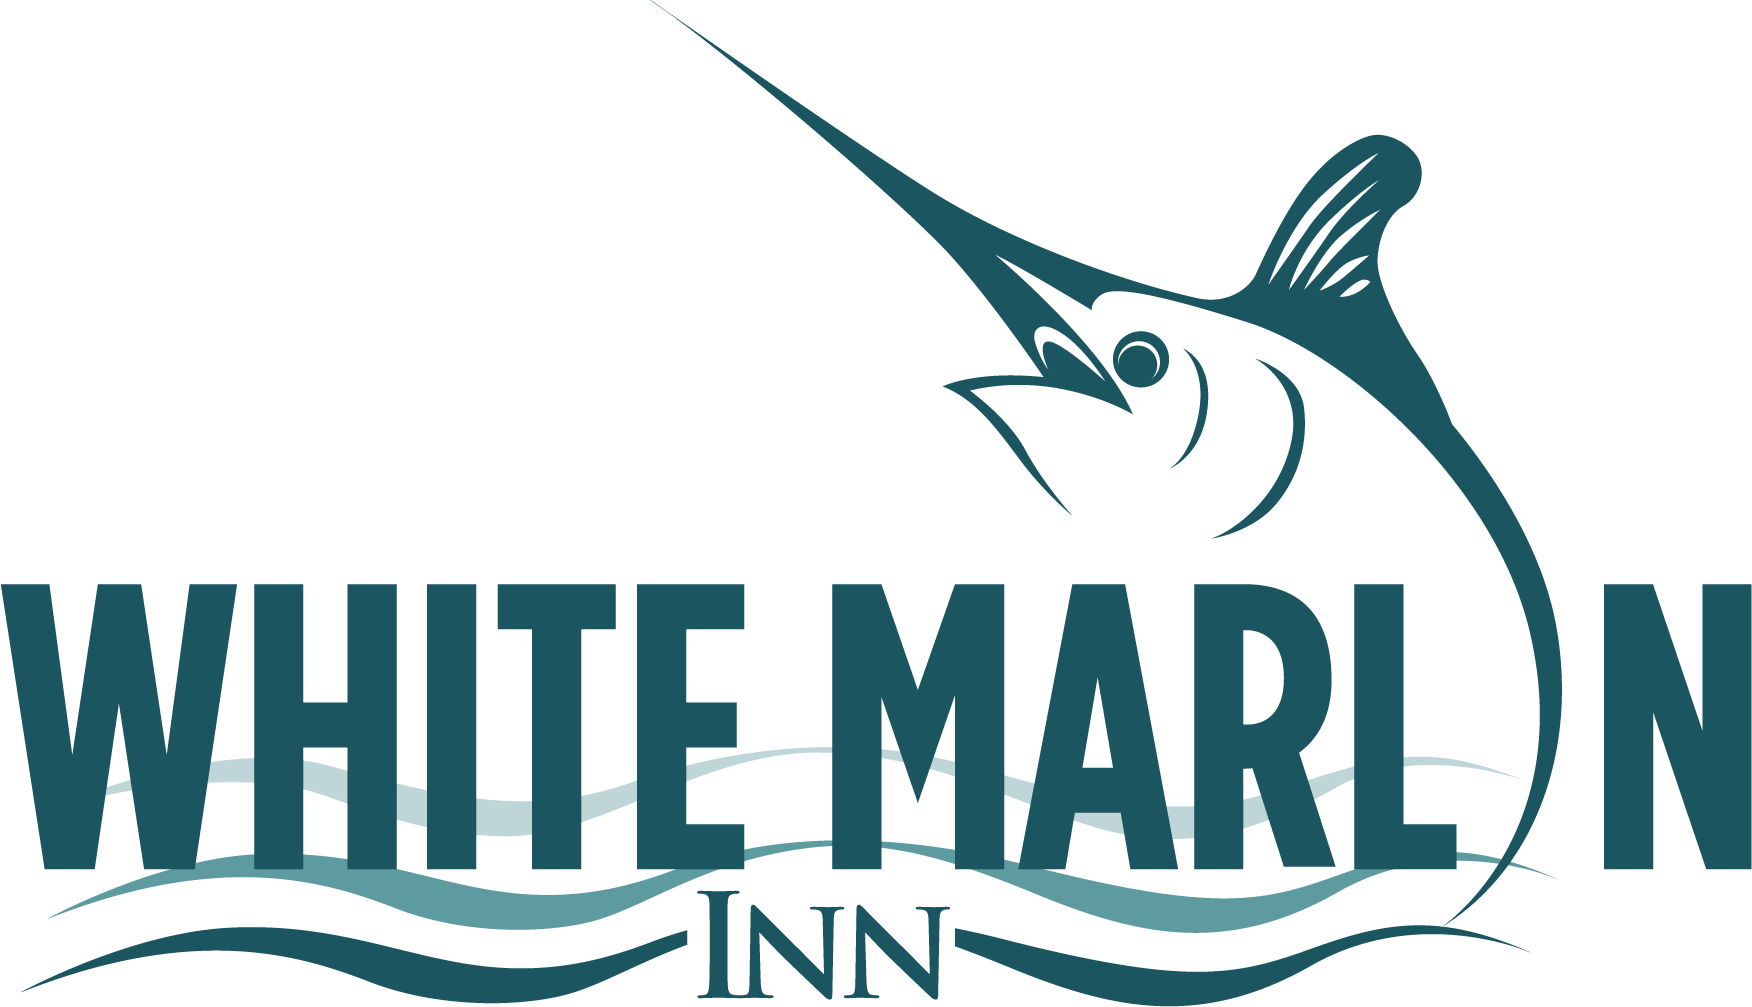 White Marlin Inn Logo